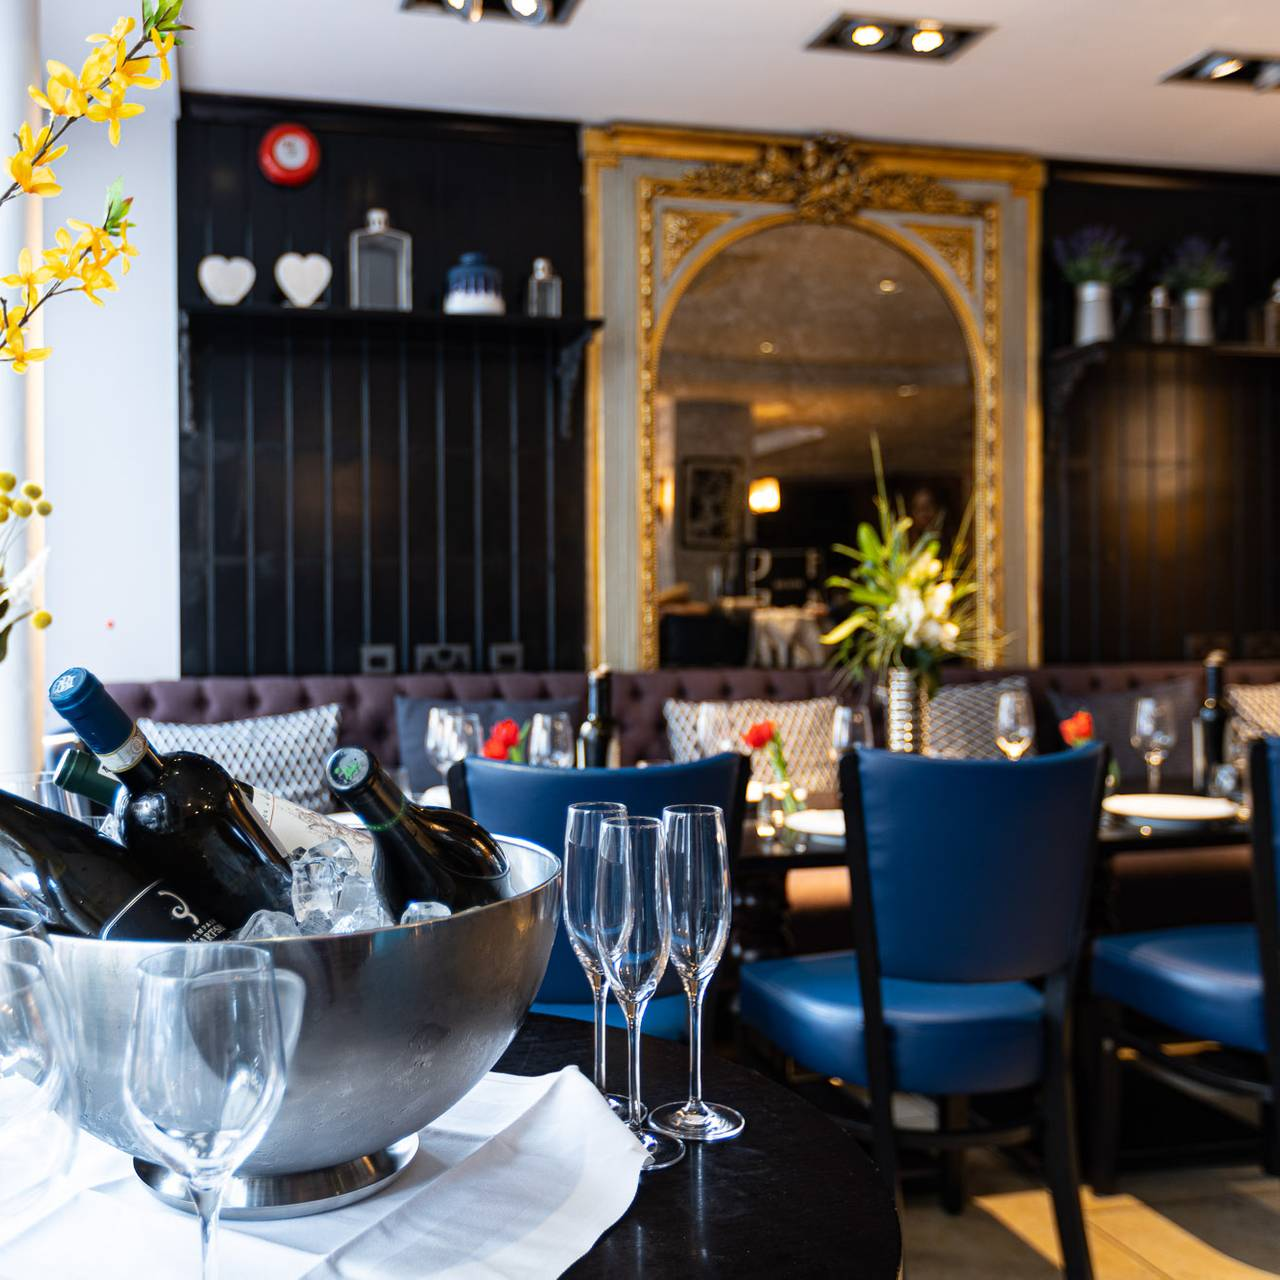 Decoration Sous Sol 2015 il baretto wine bar and restaurant - london, | opentable